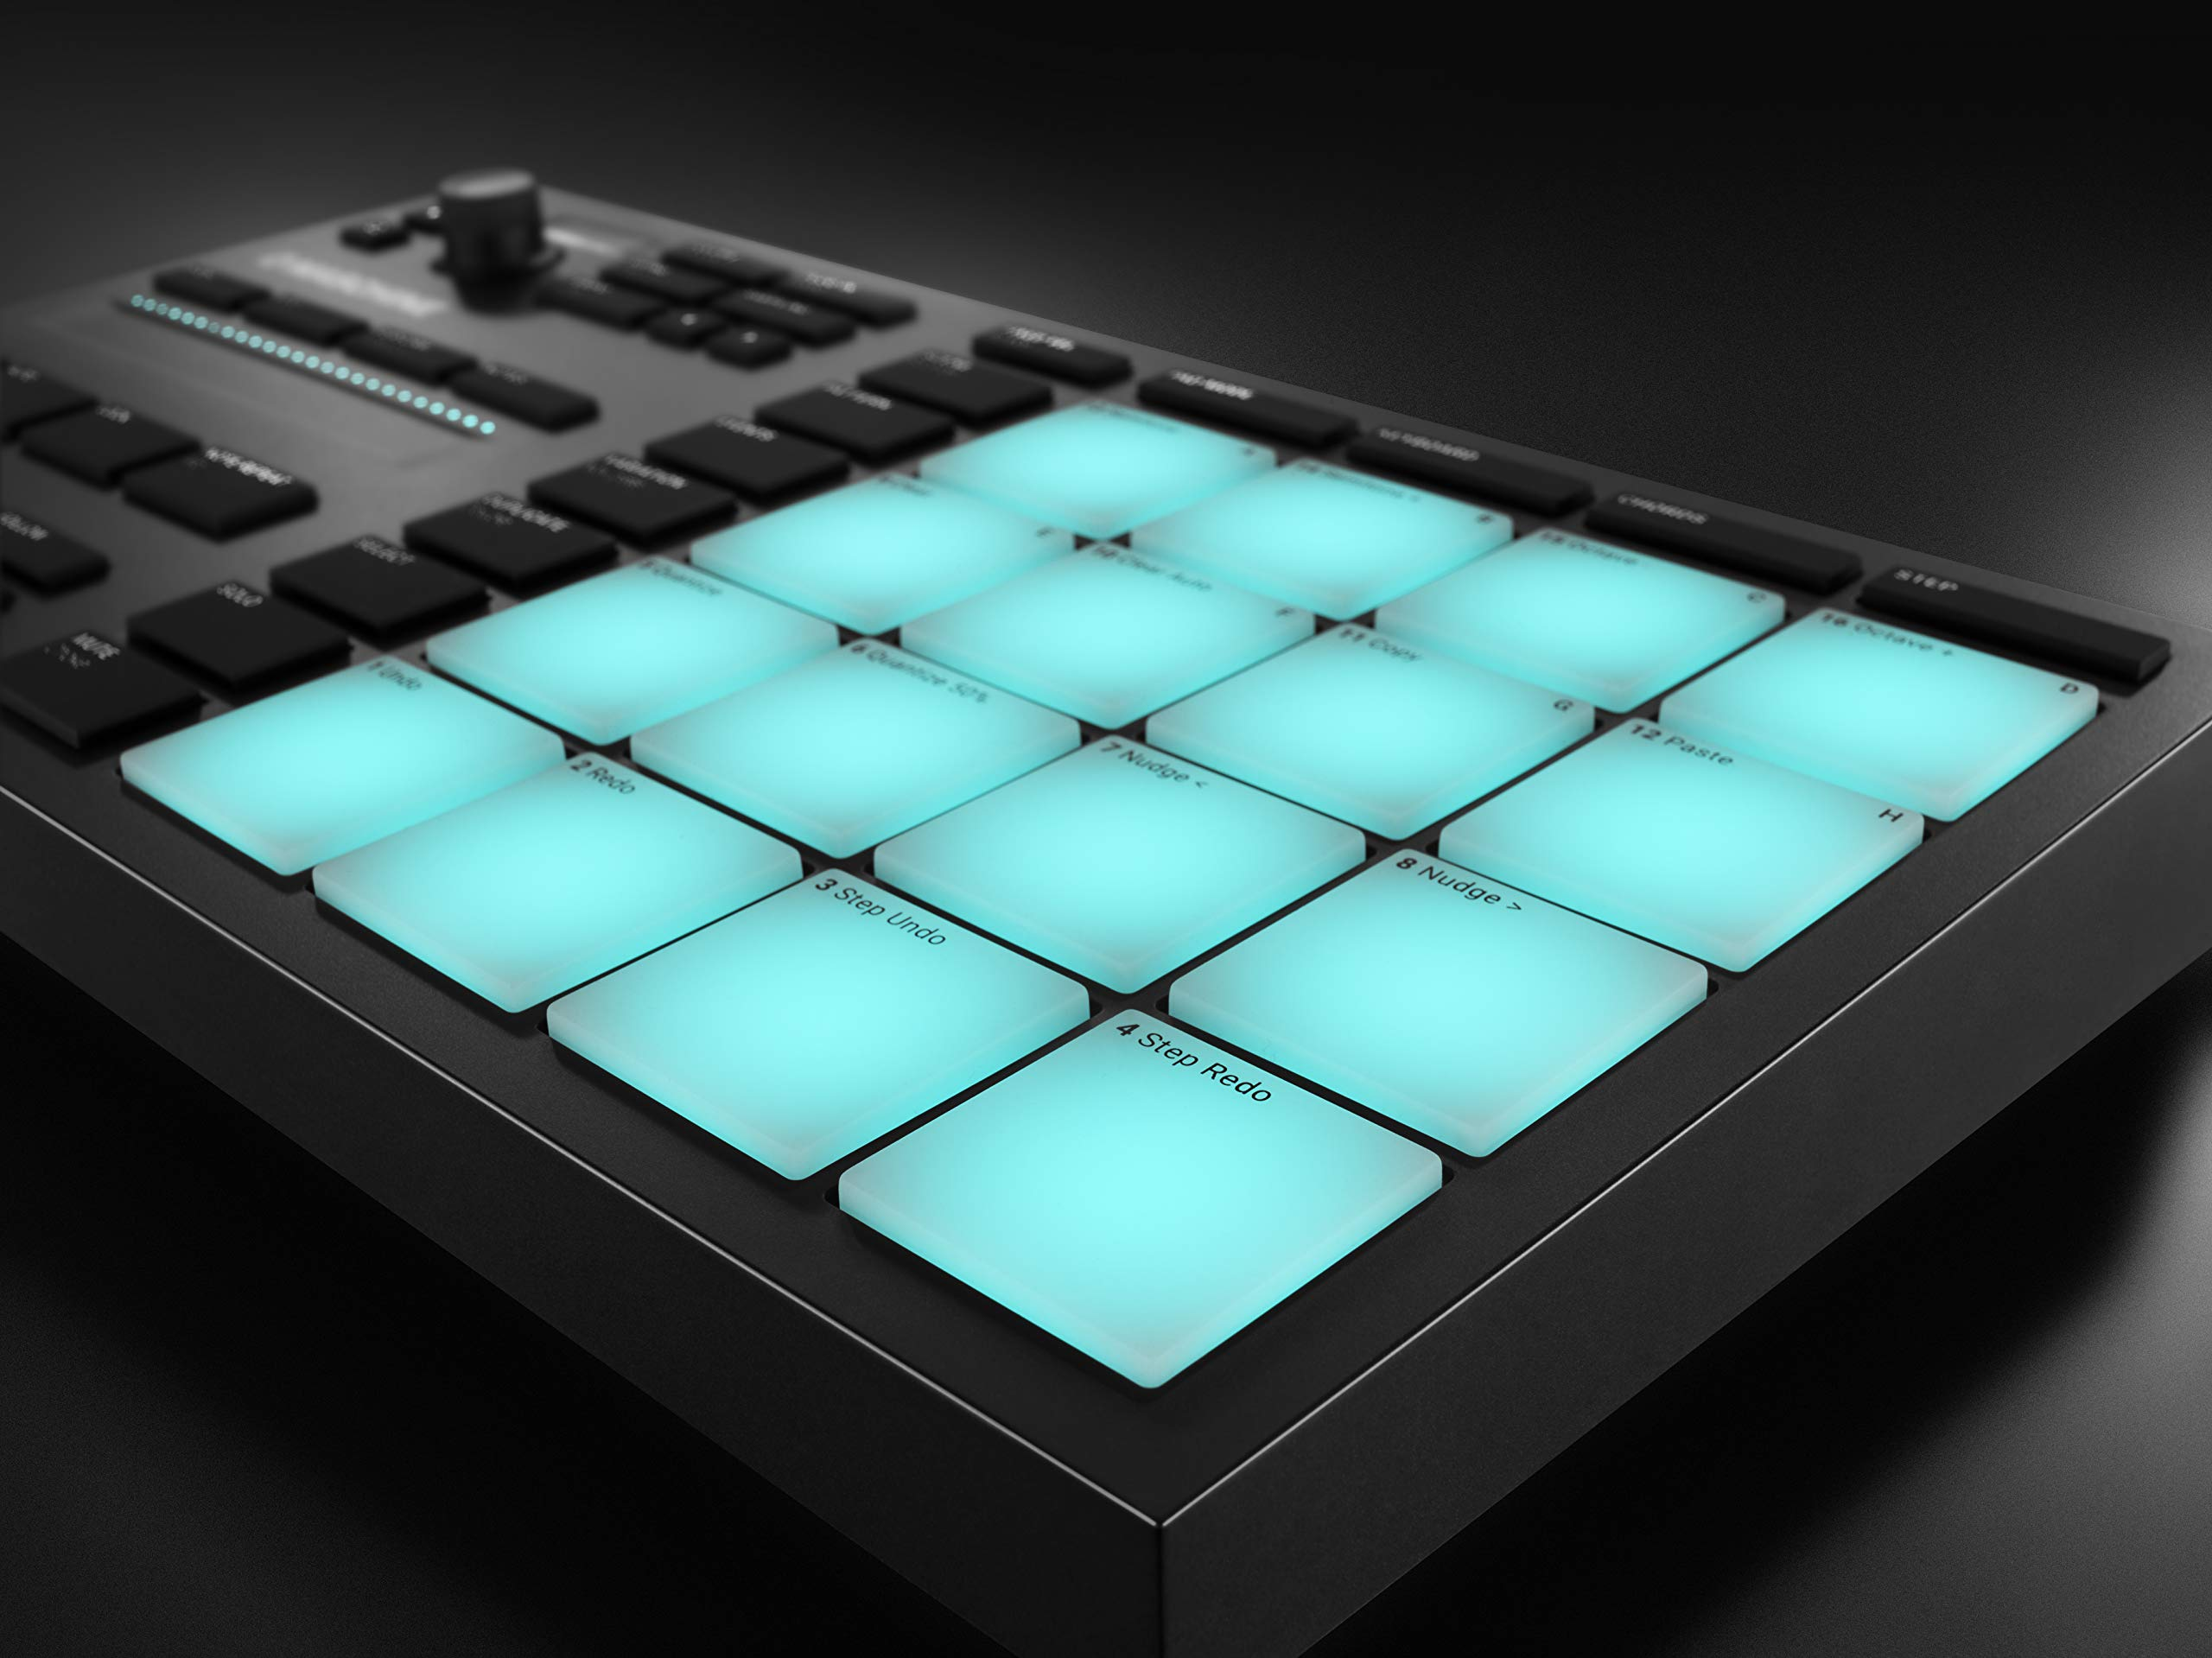 Native Instruments Maschine Mikro Mk3 Drum Controller - Buy Online ...